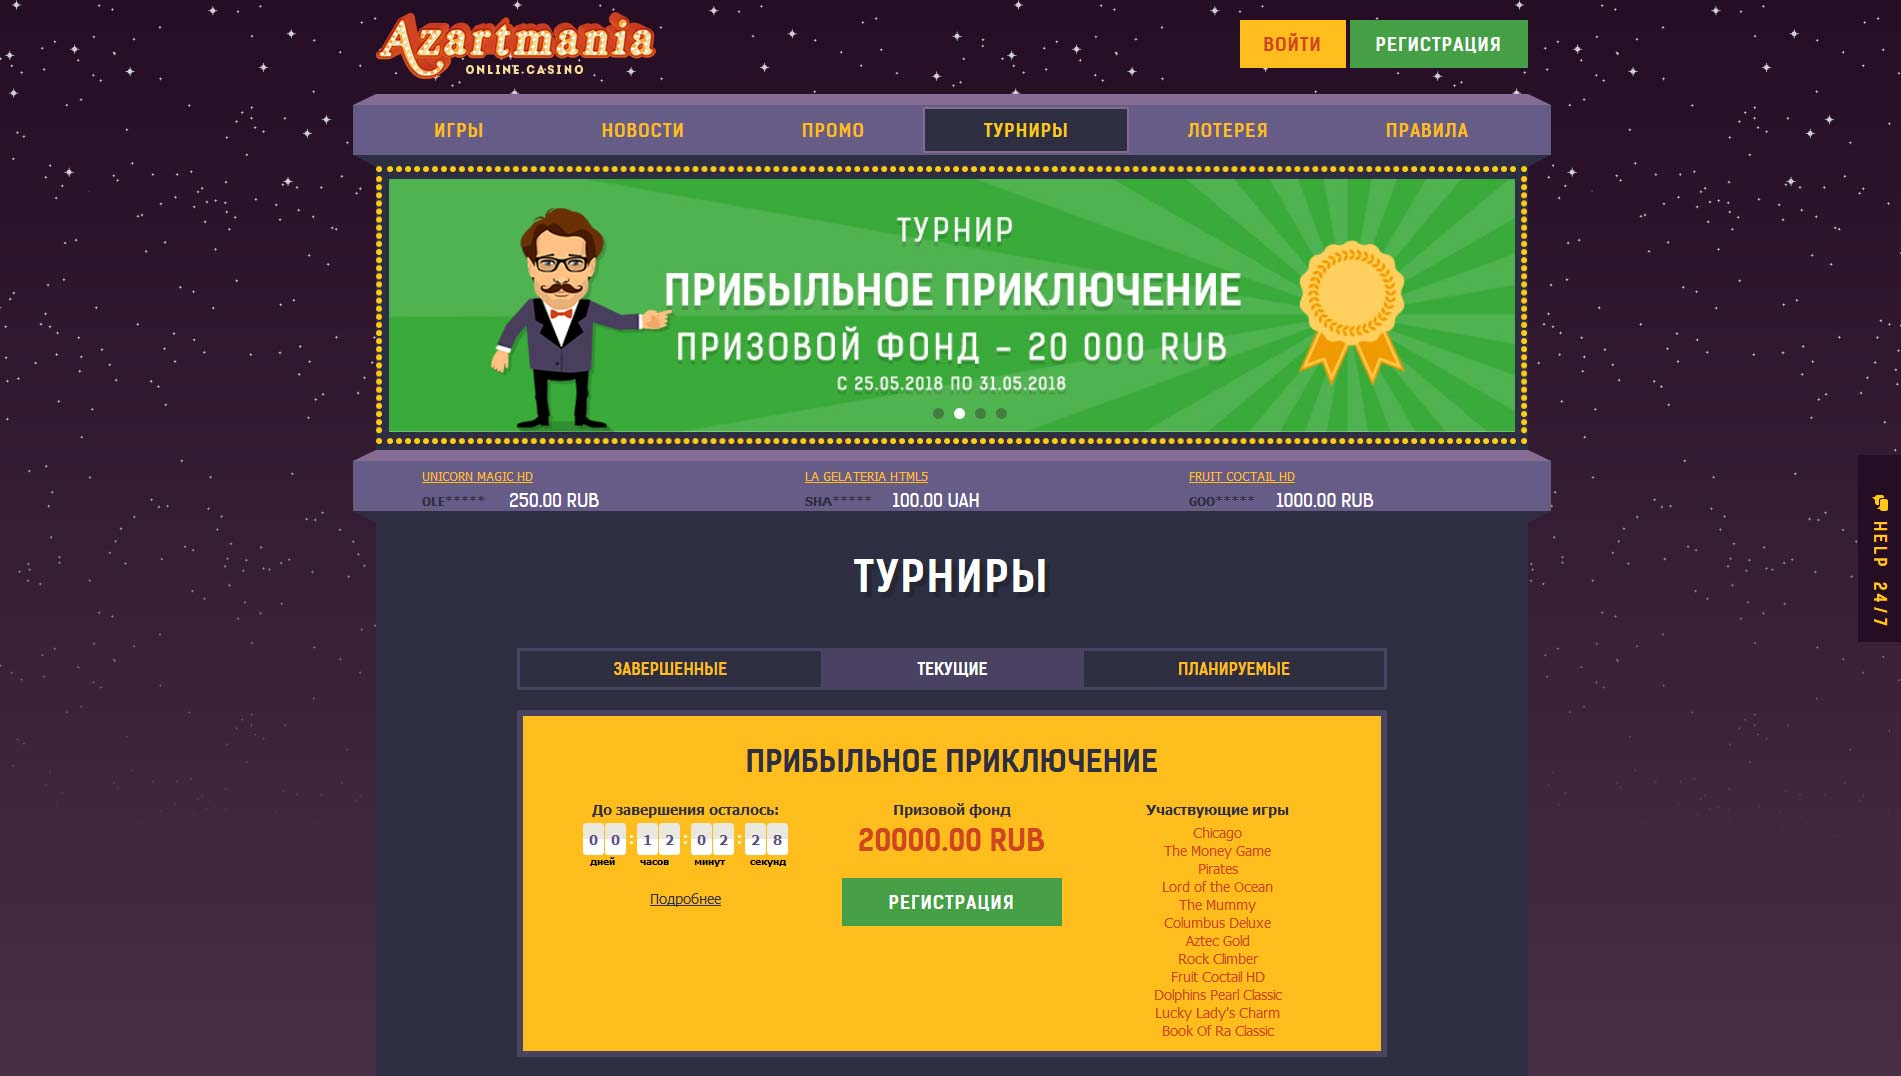 azartmania casino вход